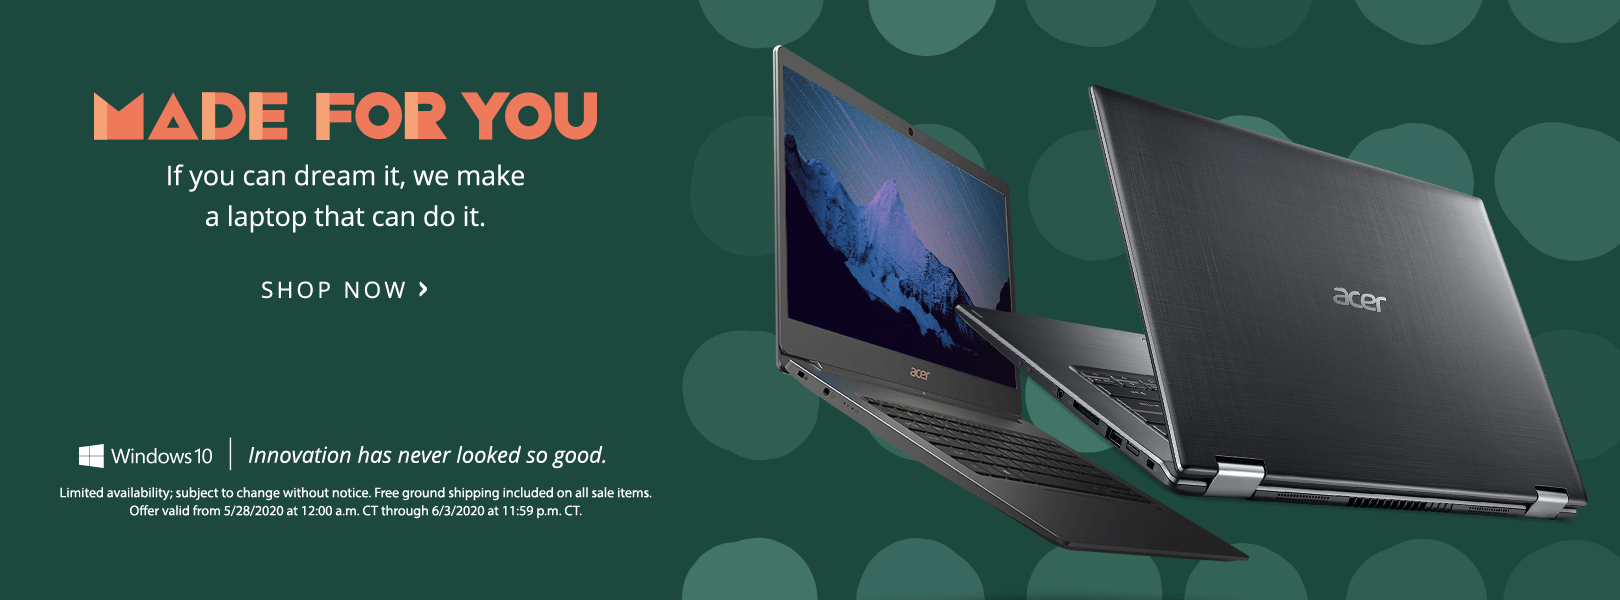 Made for you. If you can dream it, we make a laptop that can do it.